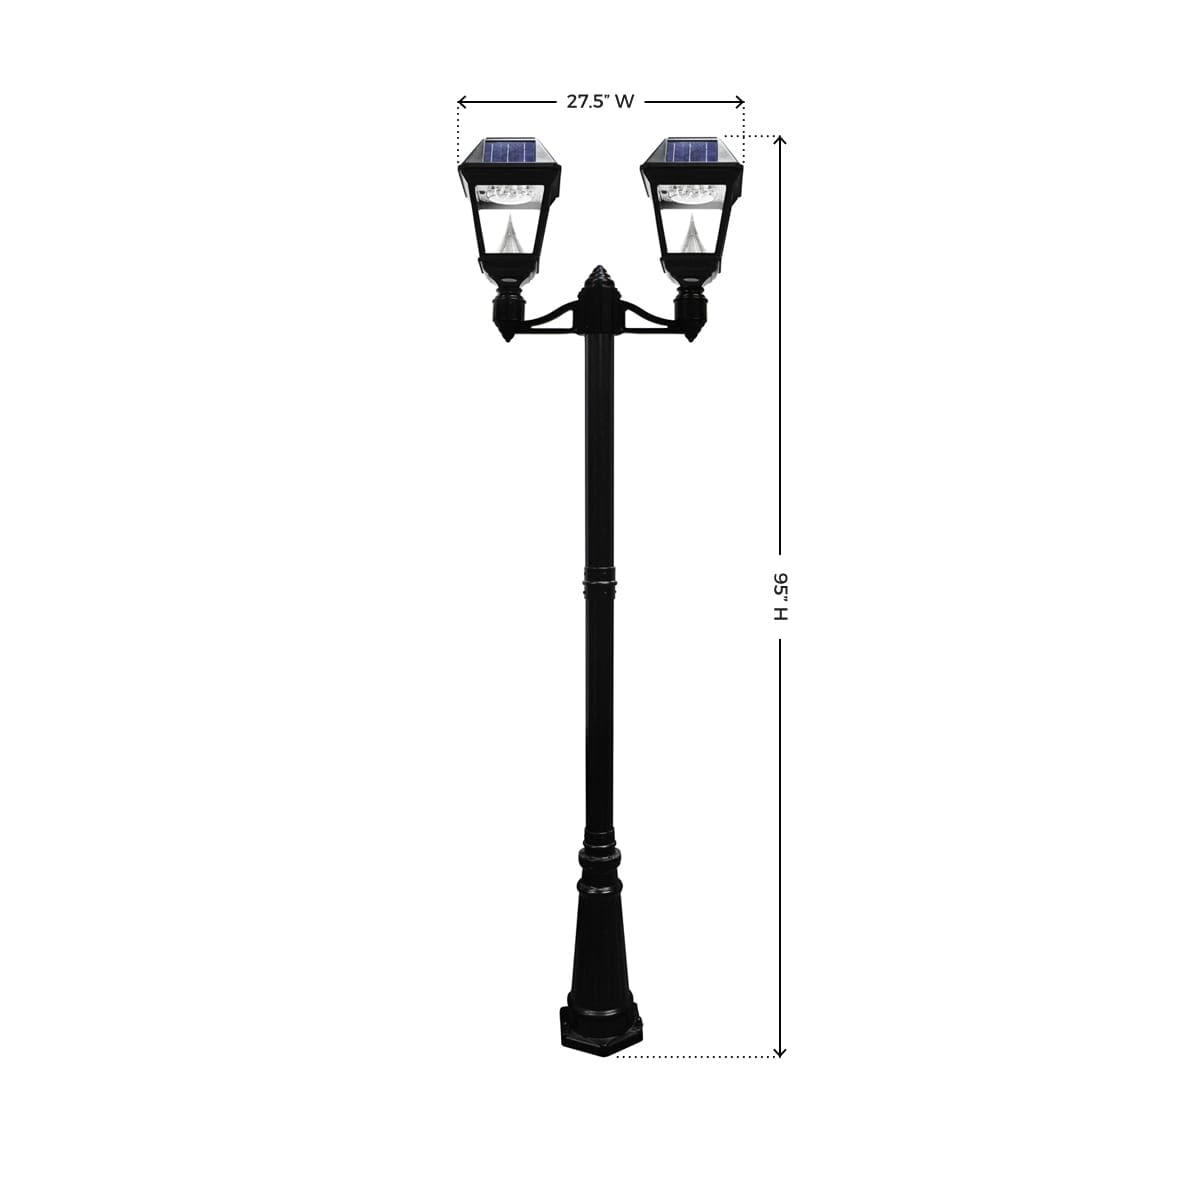 Gama Sonic Imperial II Series – Double Solar Lamp and Lamp Post GS-97ND_Measurements